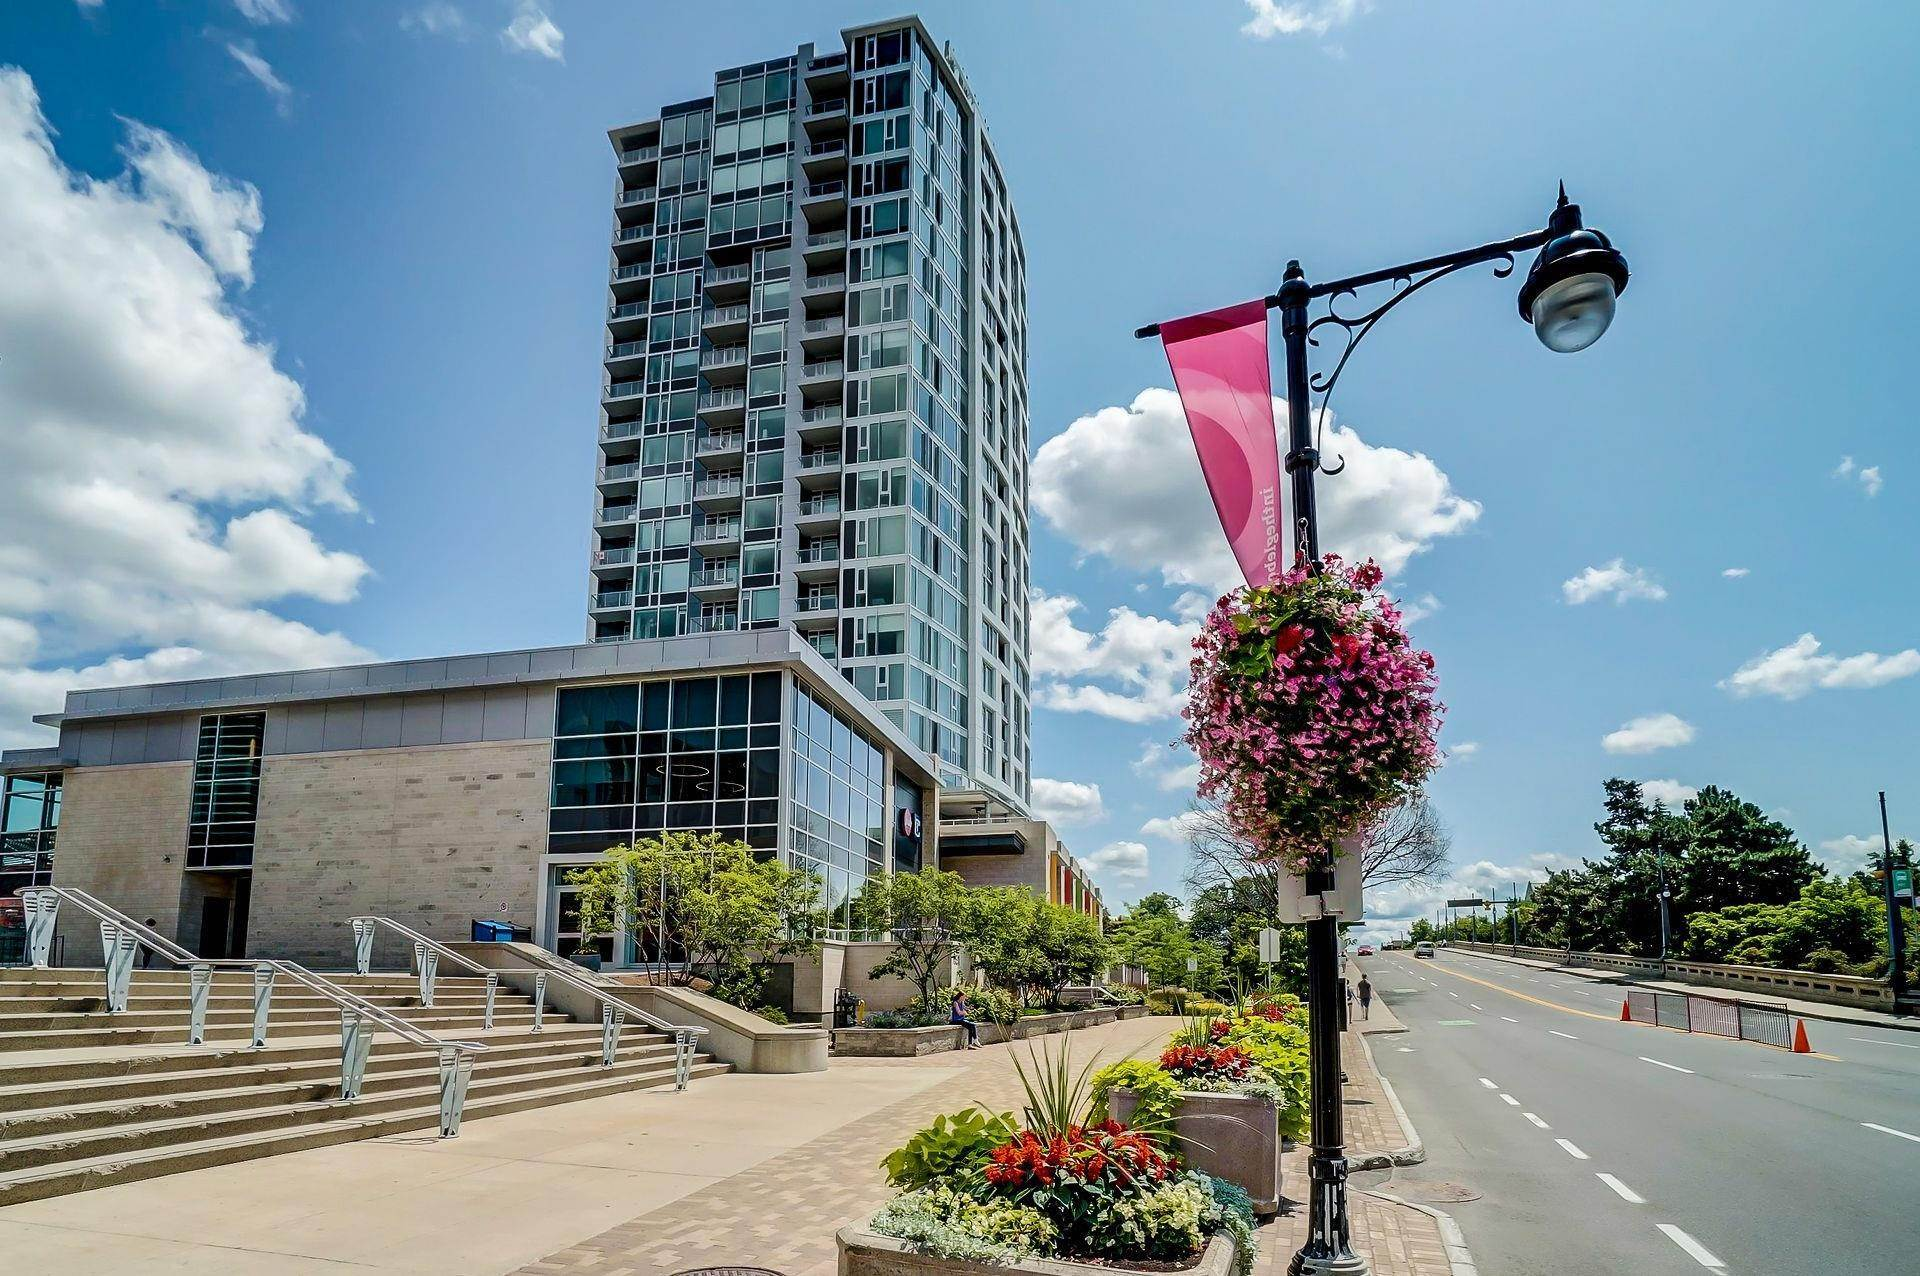 28. Townhome / Condominium for Sale at 2-Storey Townhome 1035 Bank Street Ottawa, Ontario,K1S 5K3 Canada